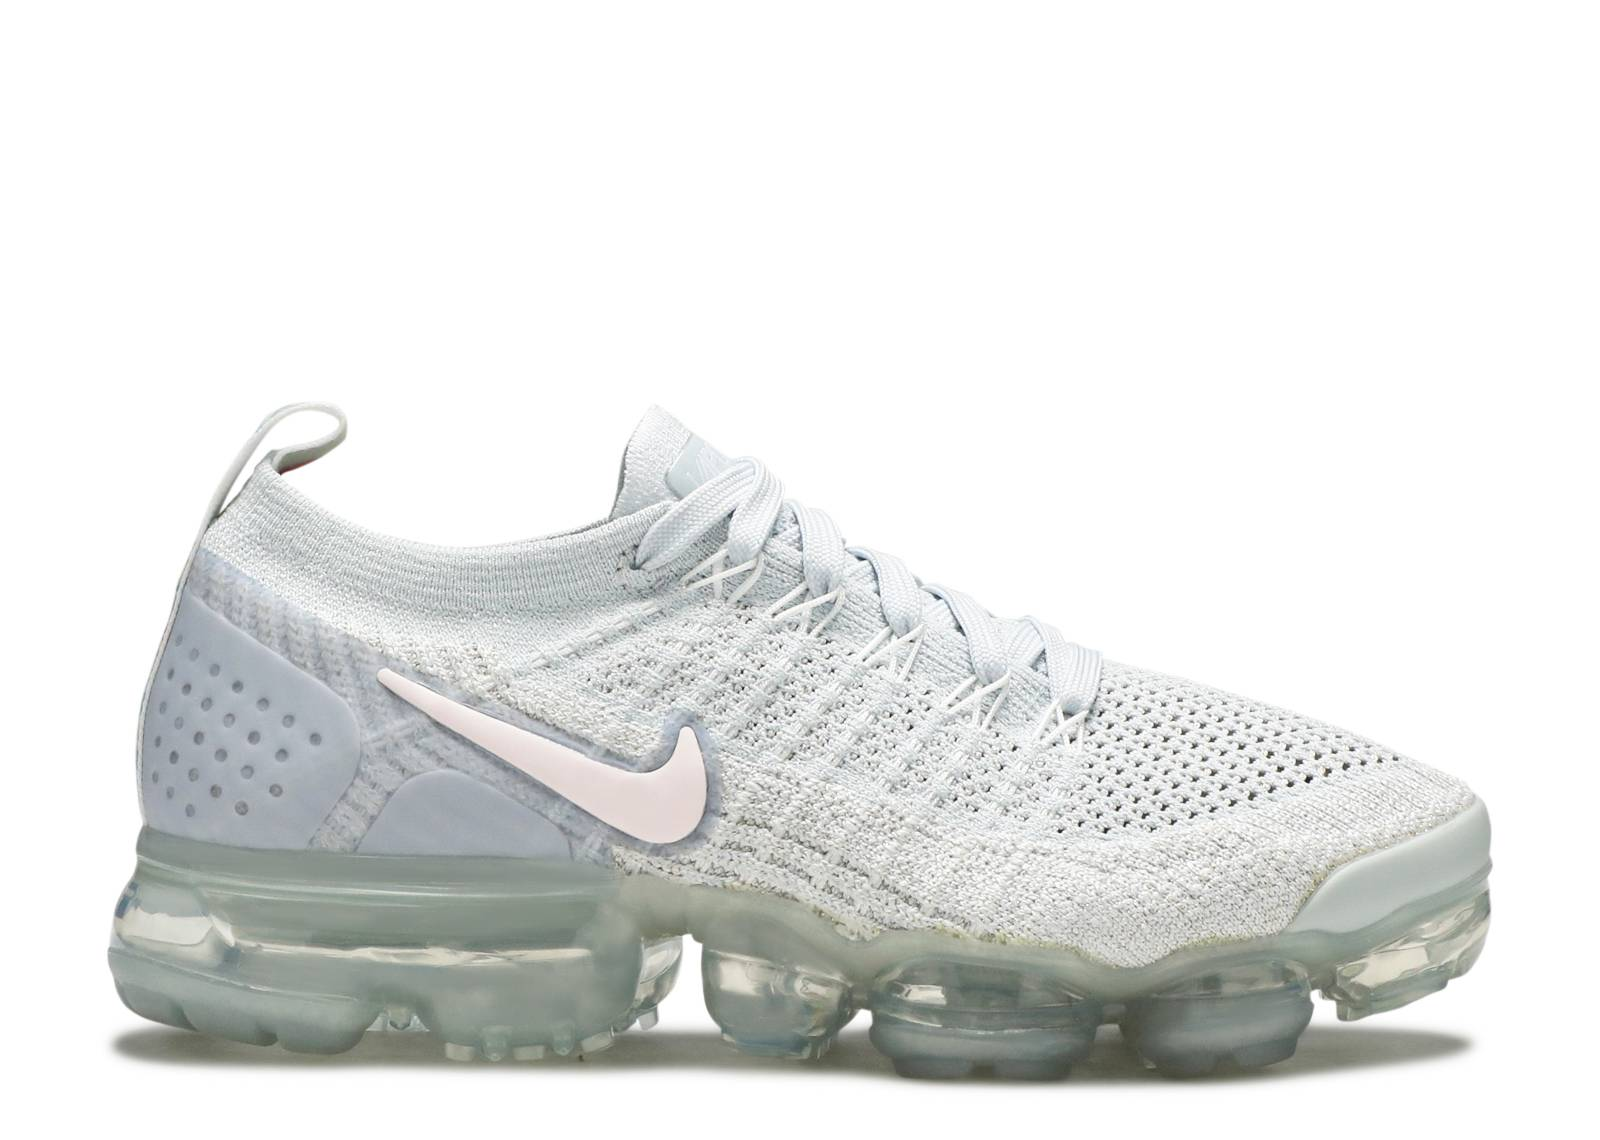 a5b6917ace6b2 W Nike Air Vapormax Flyknit 2 - Nike - 942843 011 - pure platinum ...